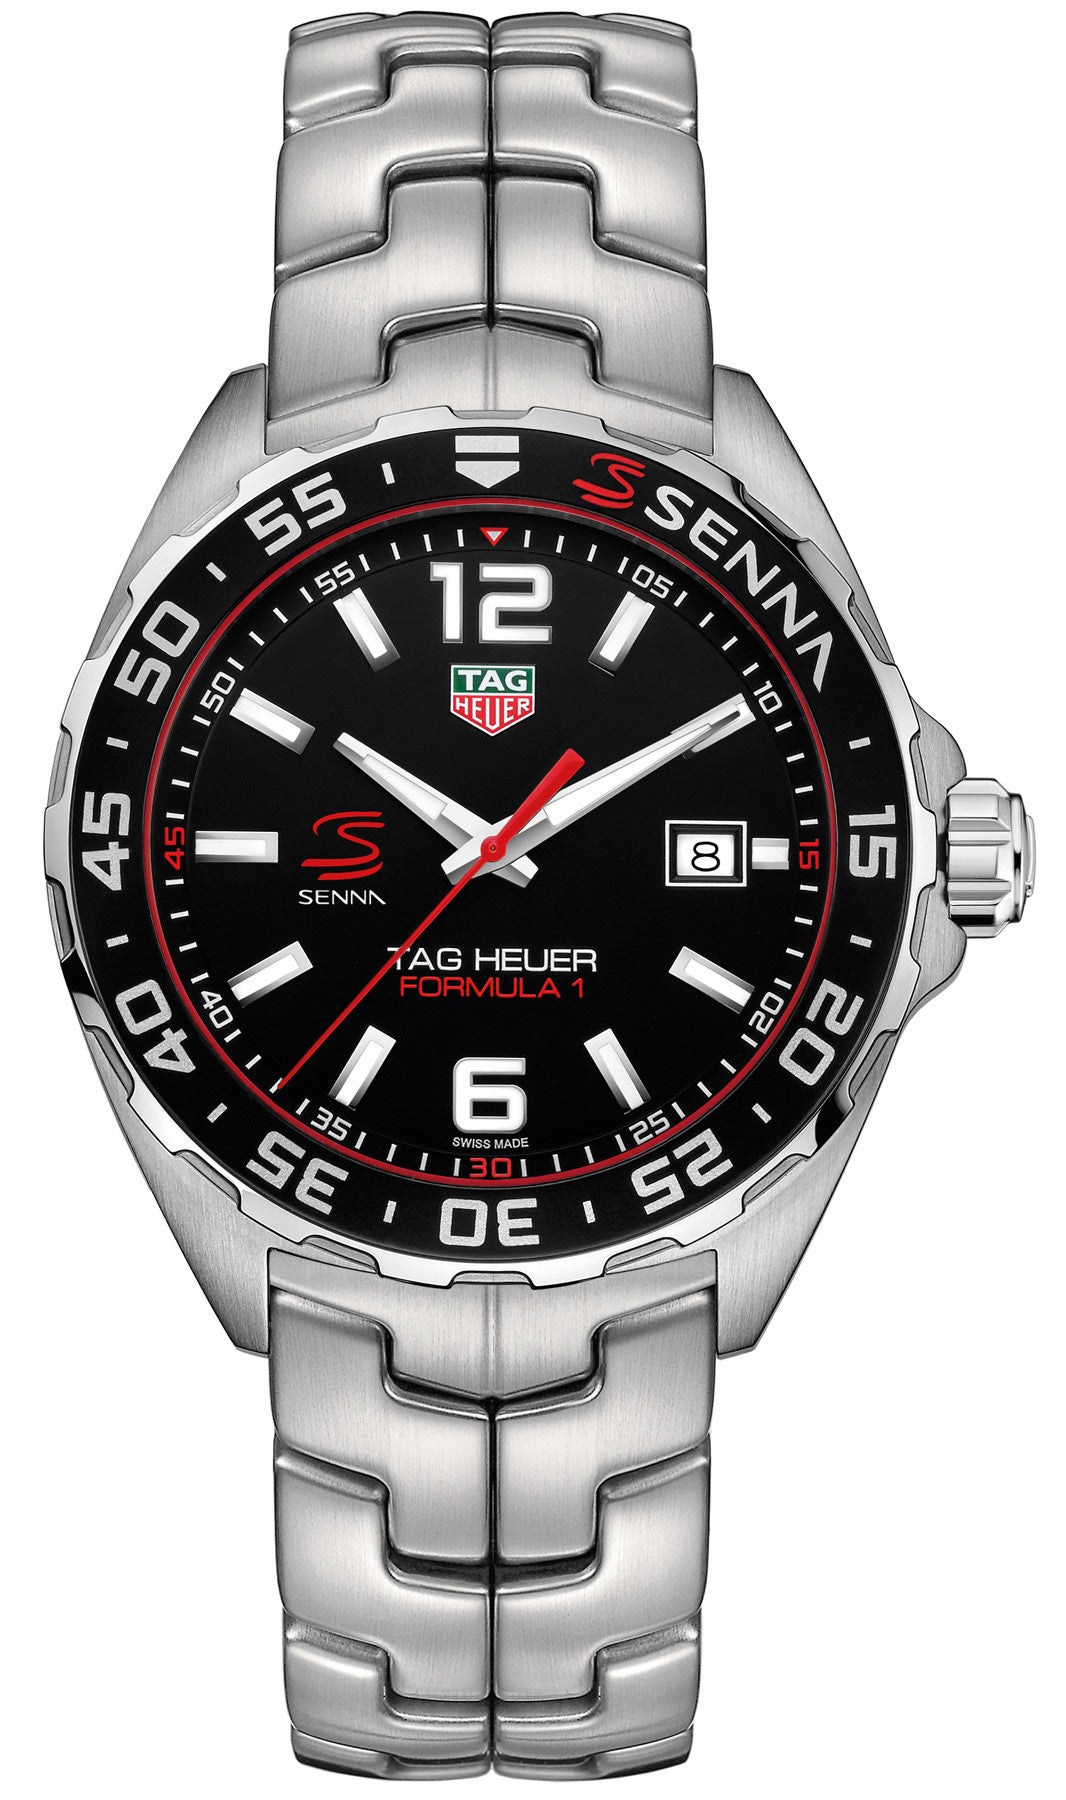 TAG Heuer Watch Formula 1 Senna Limited Edition Bracelet